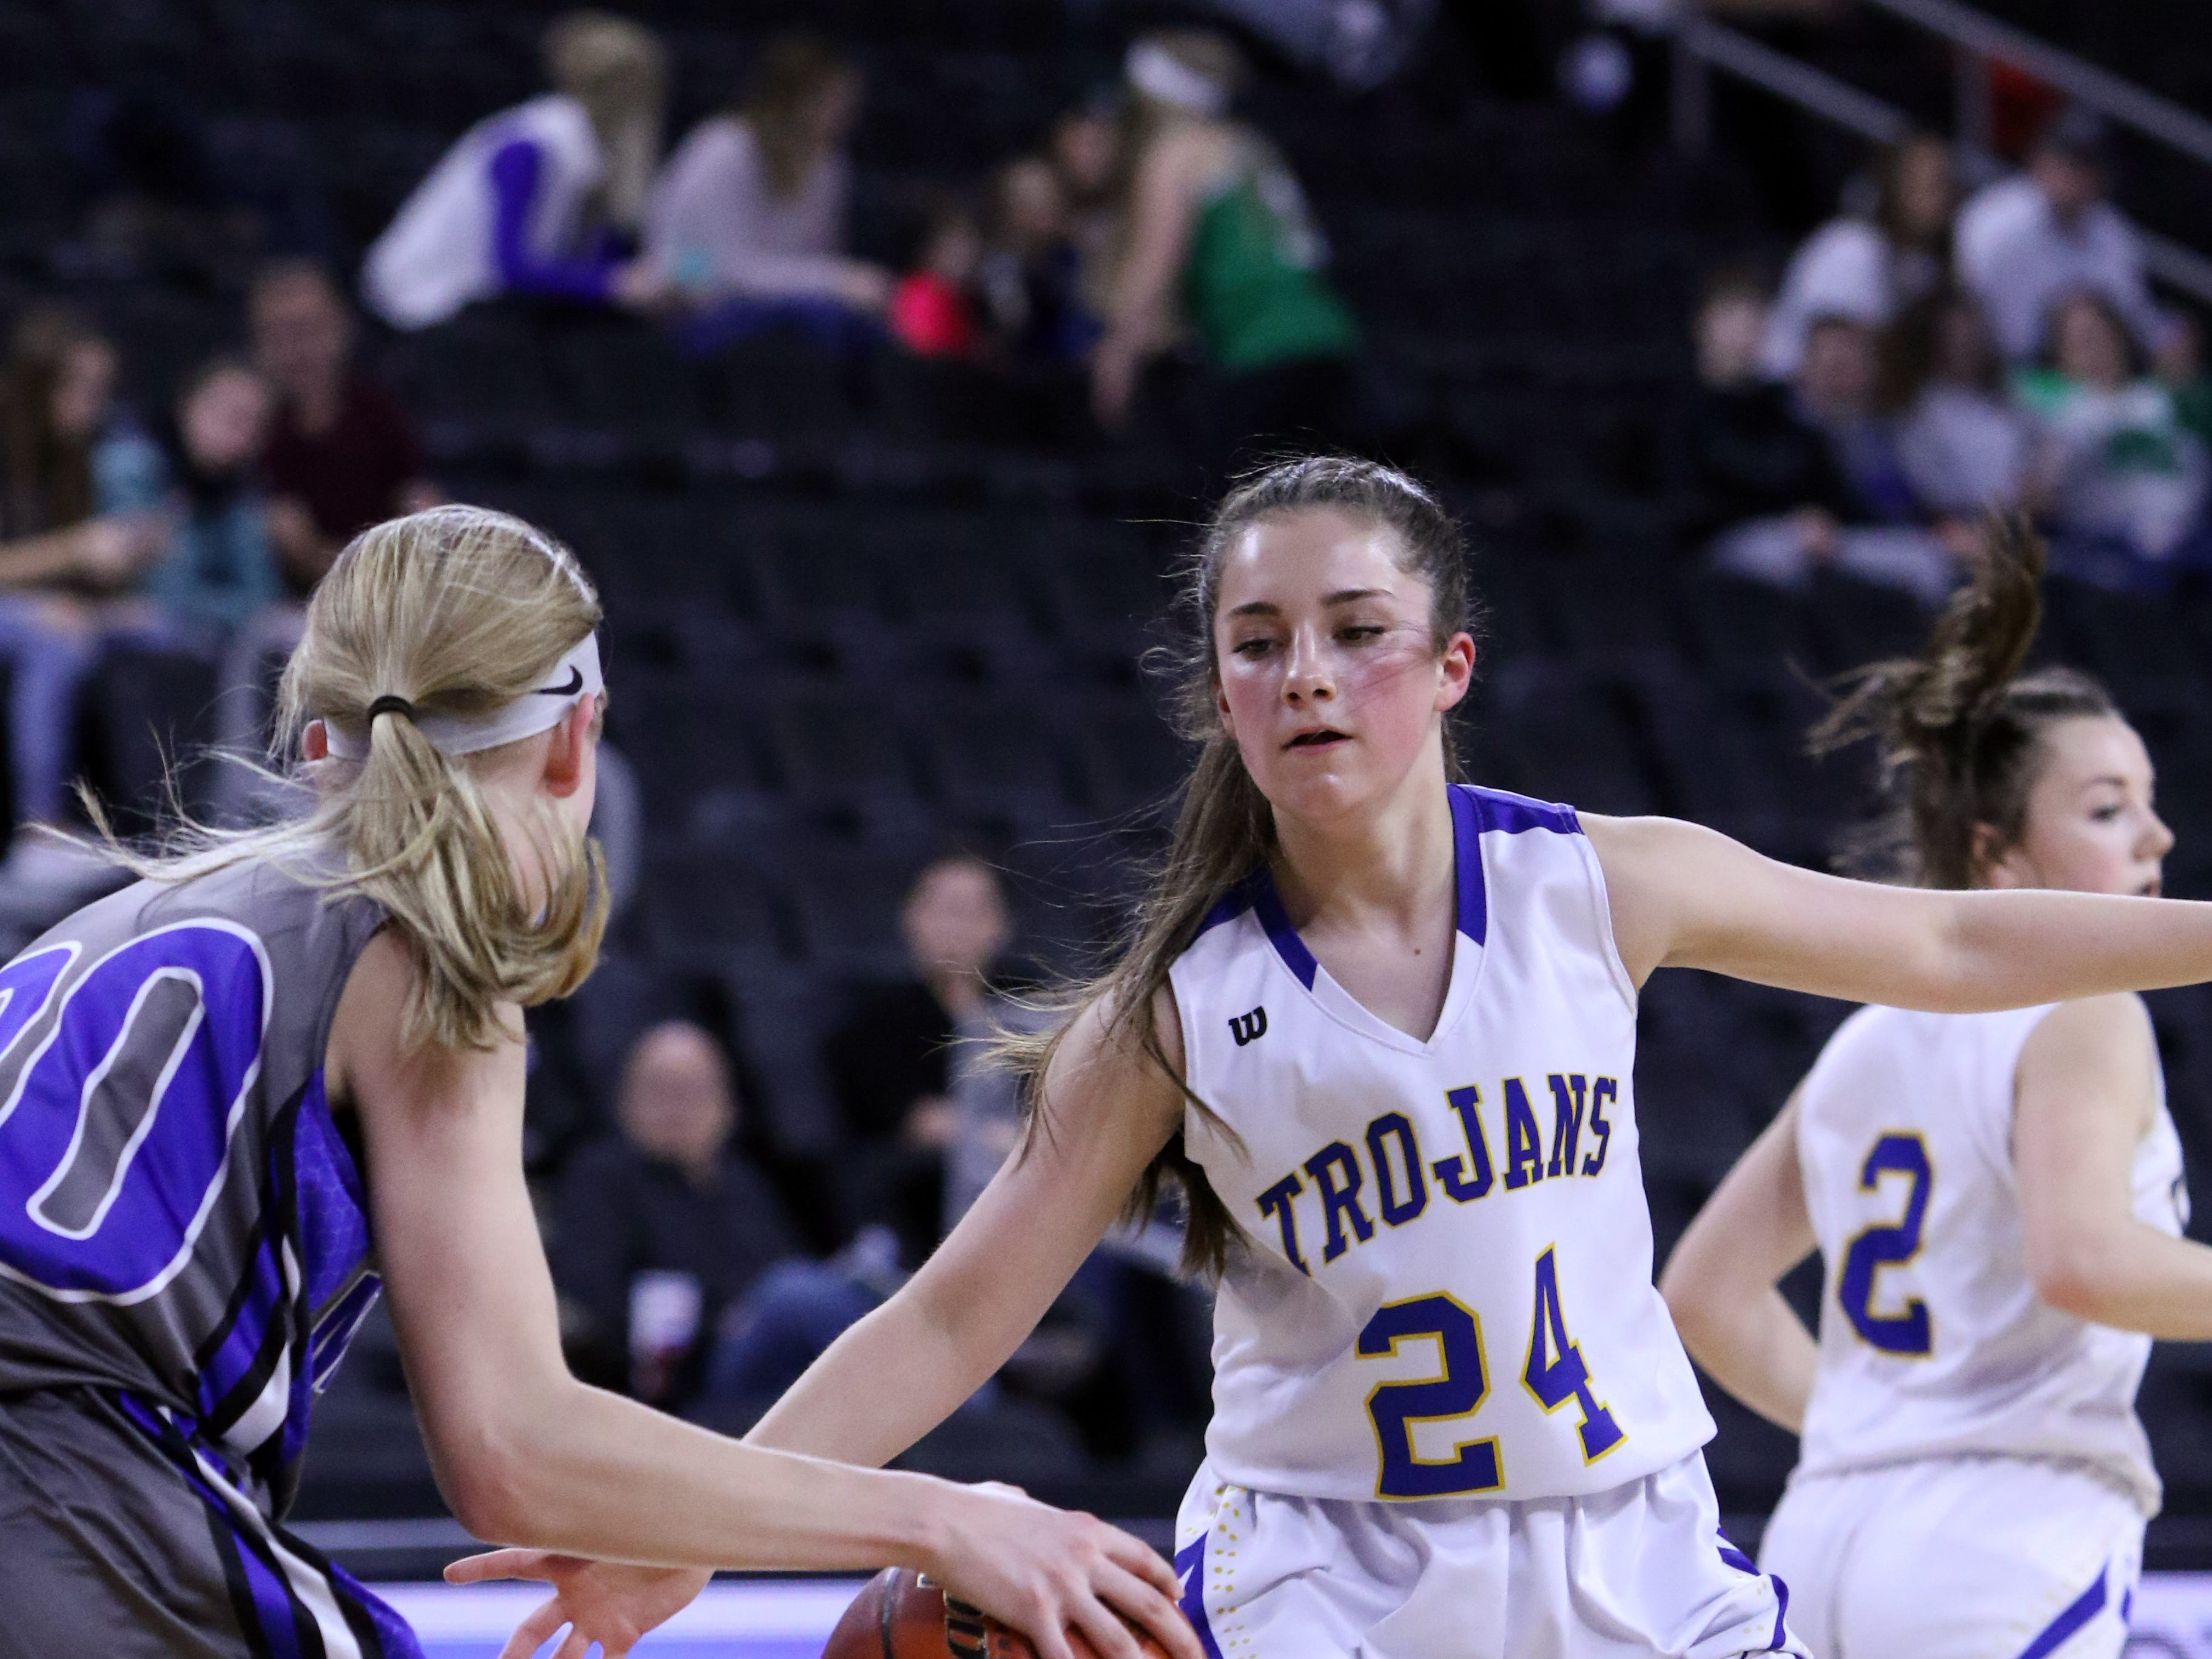 Josslin Jarding of West Central defends against Emilee Fox of Mt Vernon-Plankinton during Thursday's game at the Premier Center in Sioux Falls.